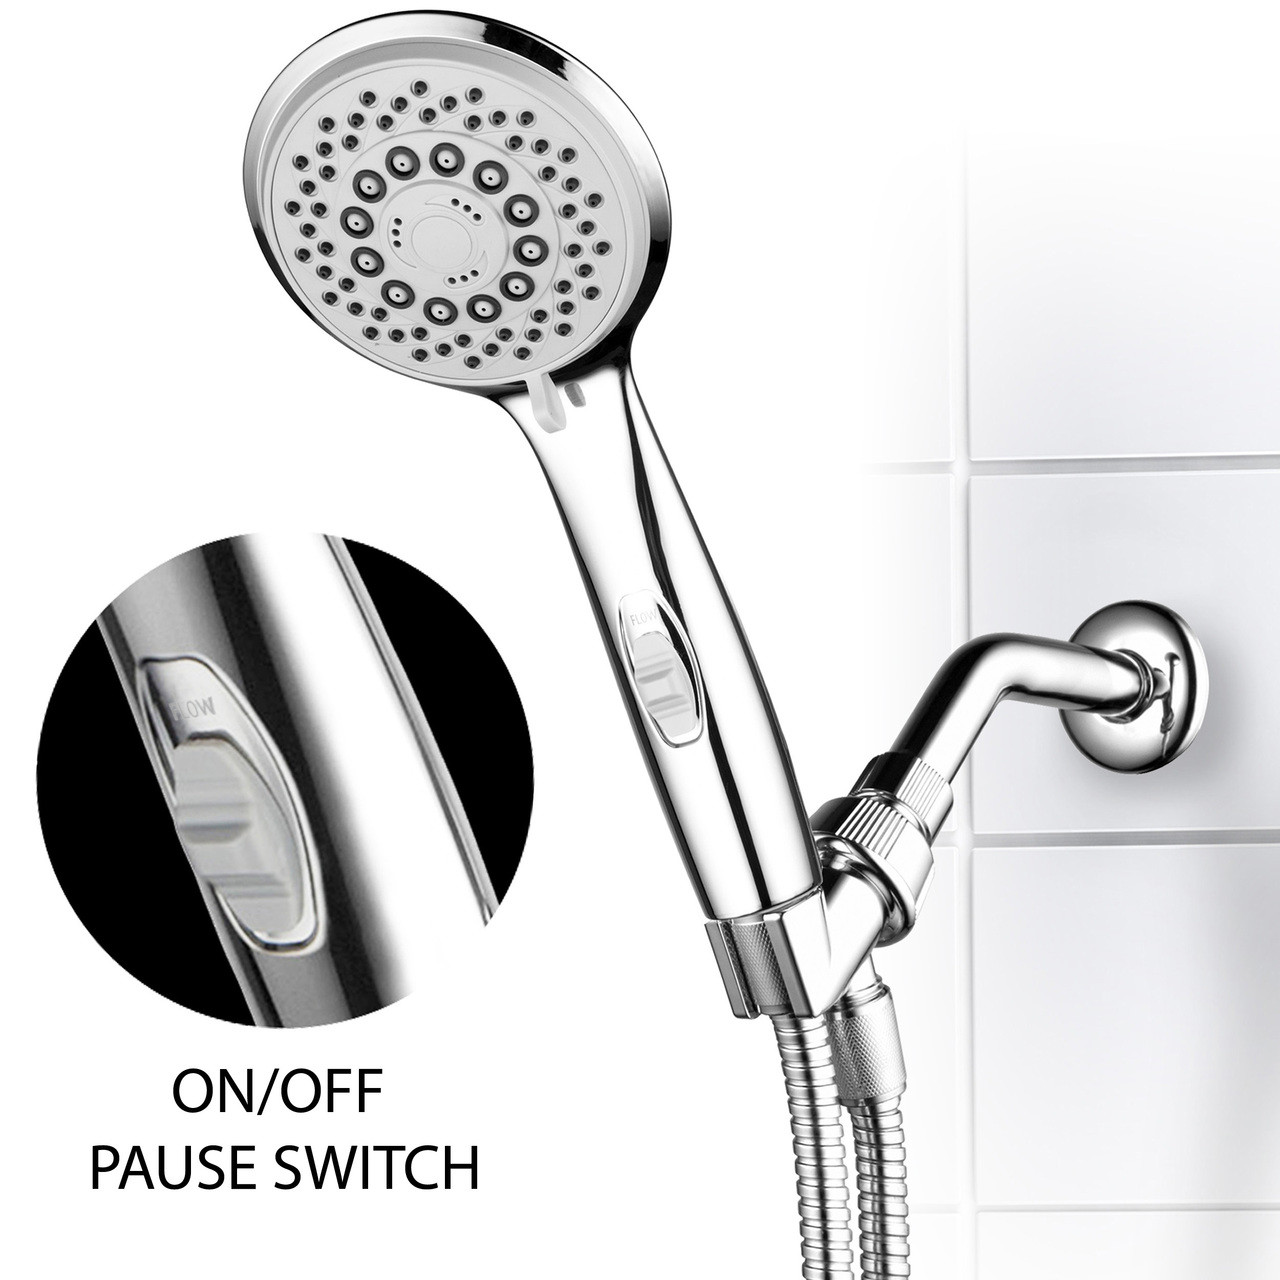 Hotel Spa High Pressure 7 Setting Handheld Shower Head With 4 Inch Face Patented Water Saving On Off Pause Switch Angle Adjustable And Easy